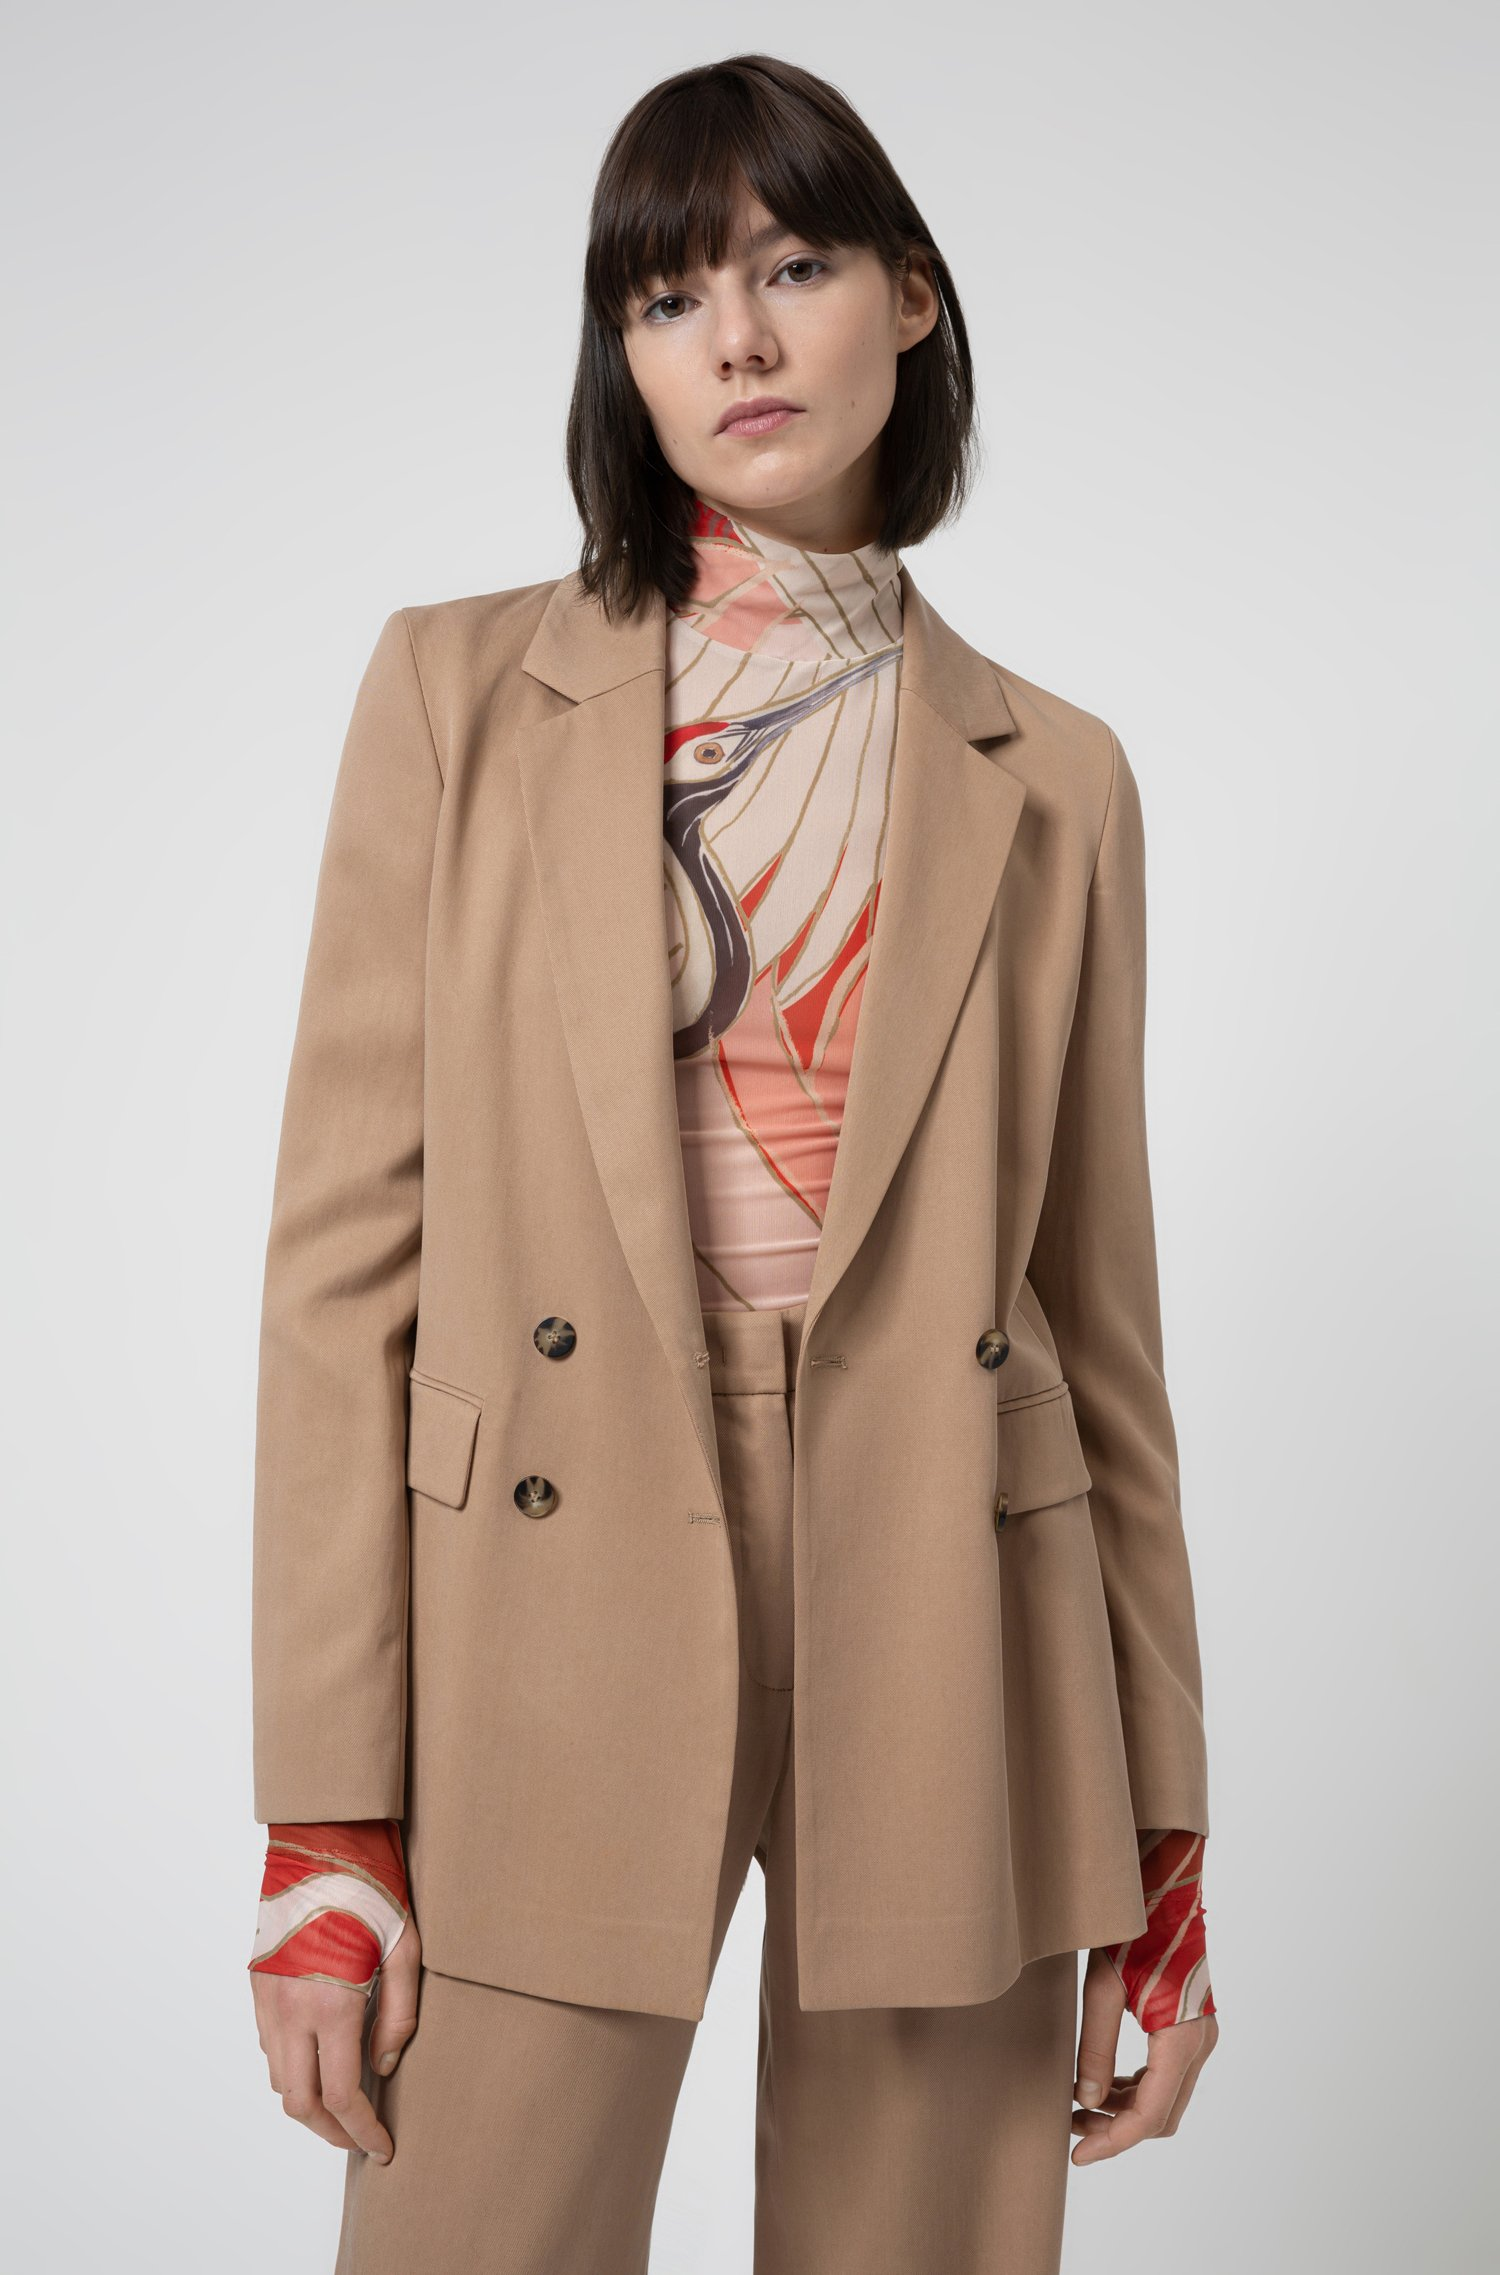 Relaxed-fit double-breasted jacket in TENCEL™ Lyocell, Light Beige